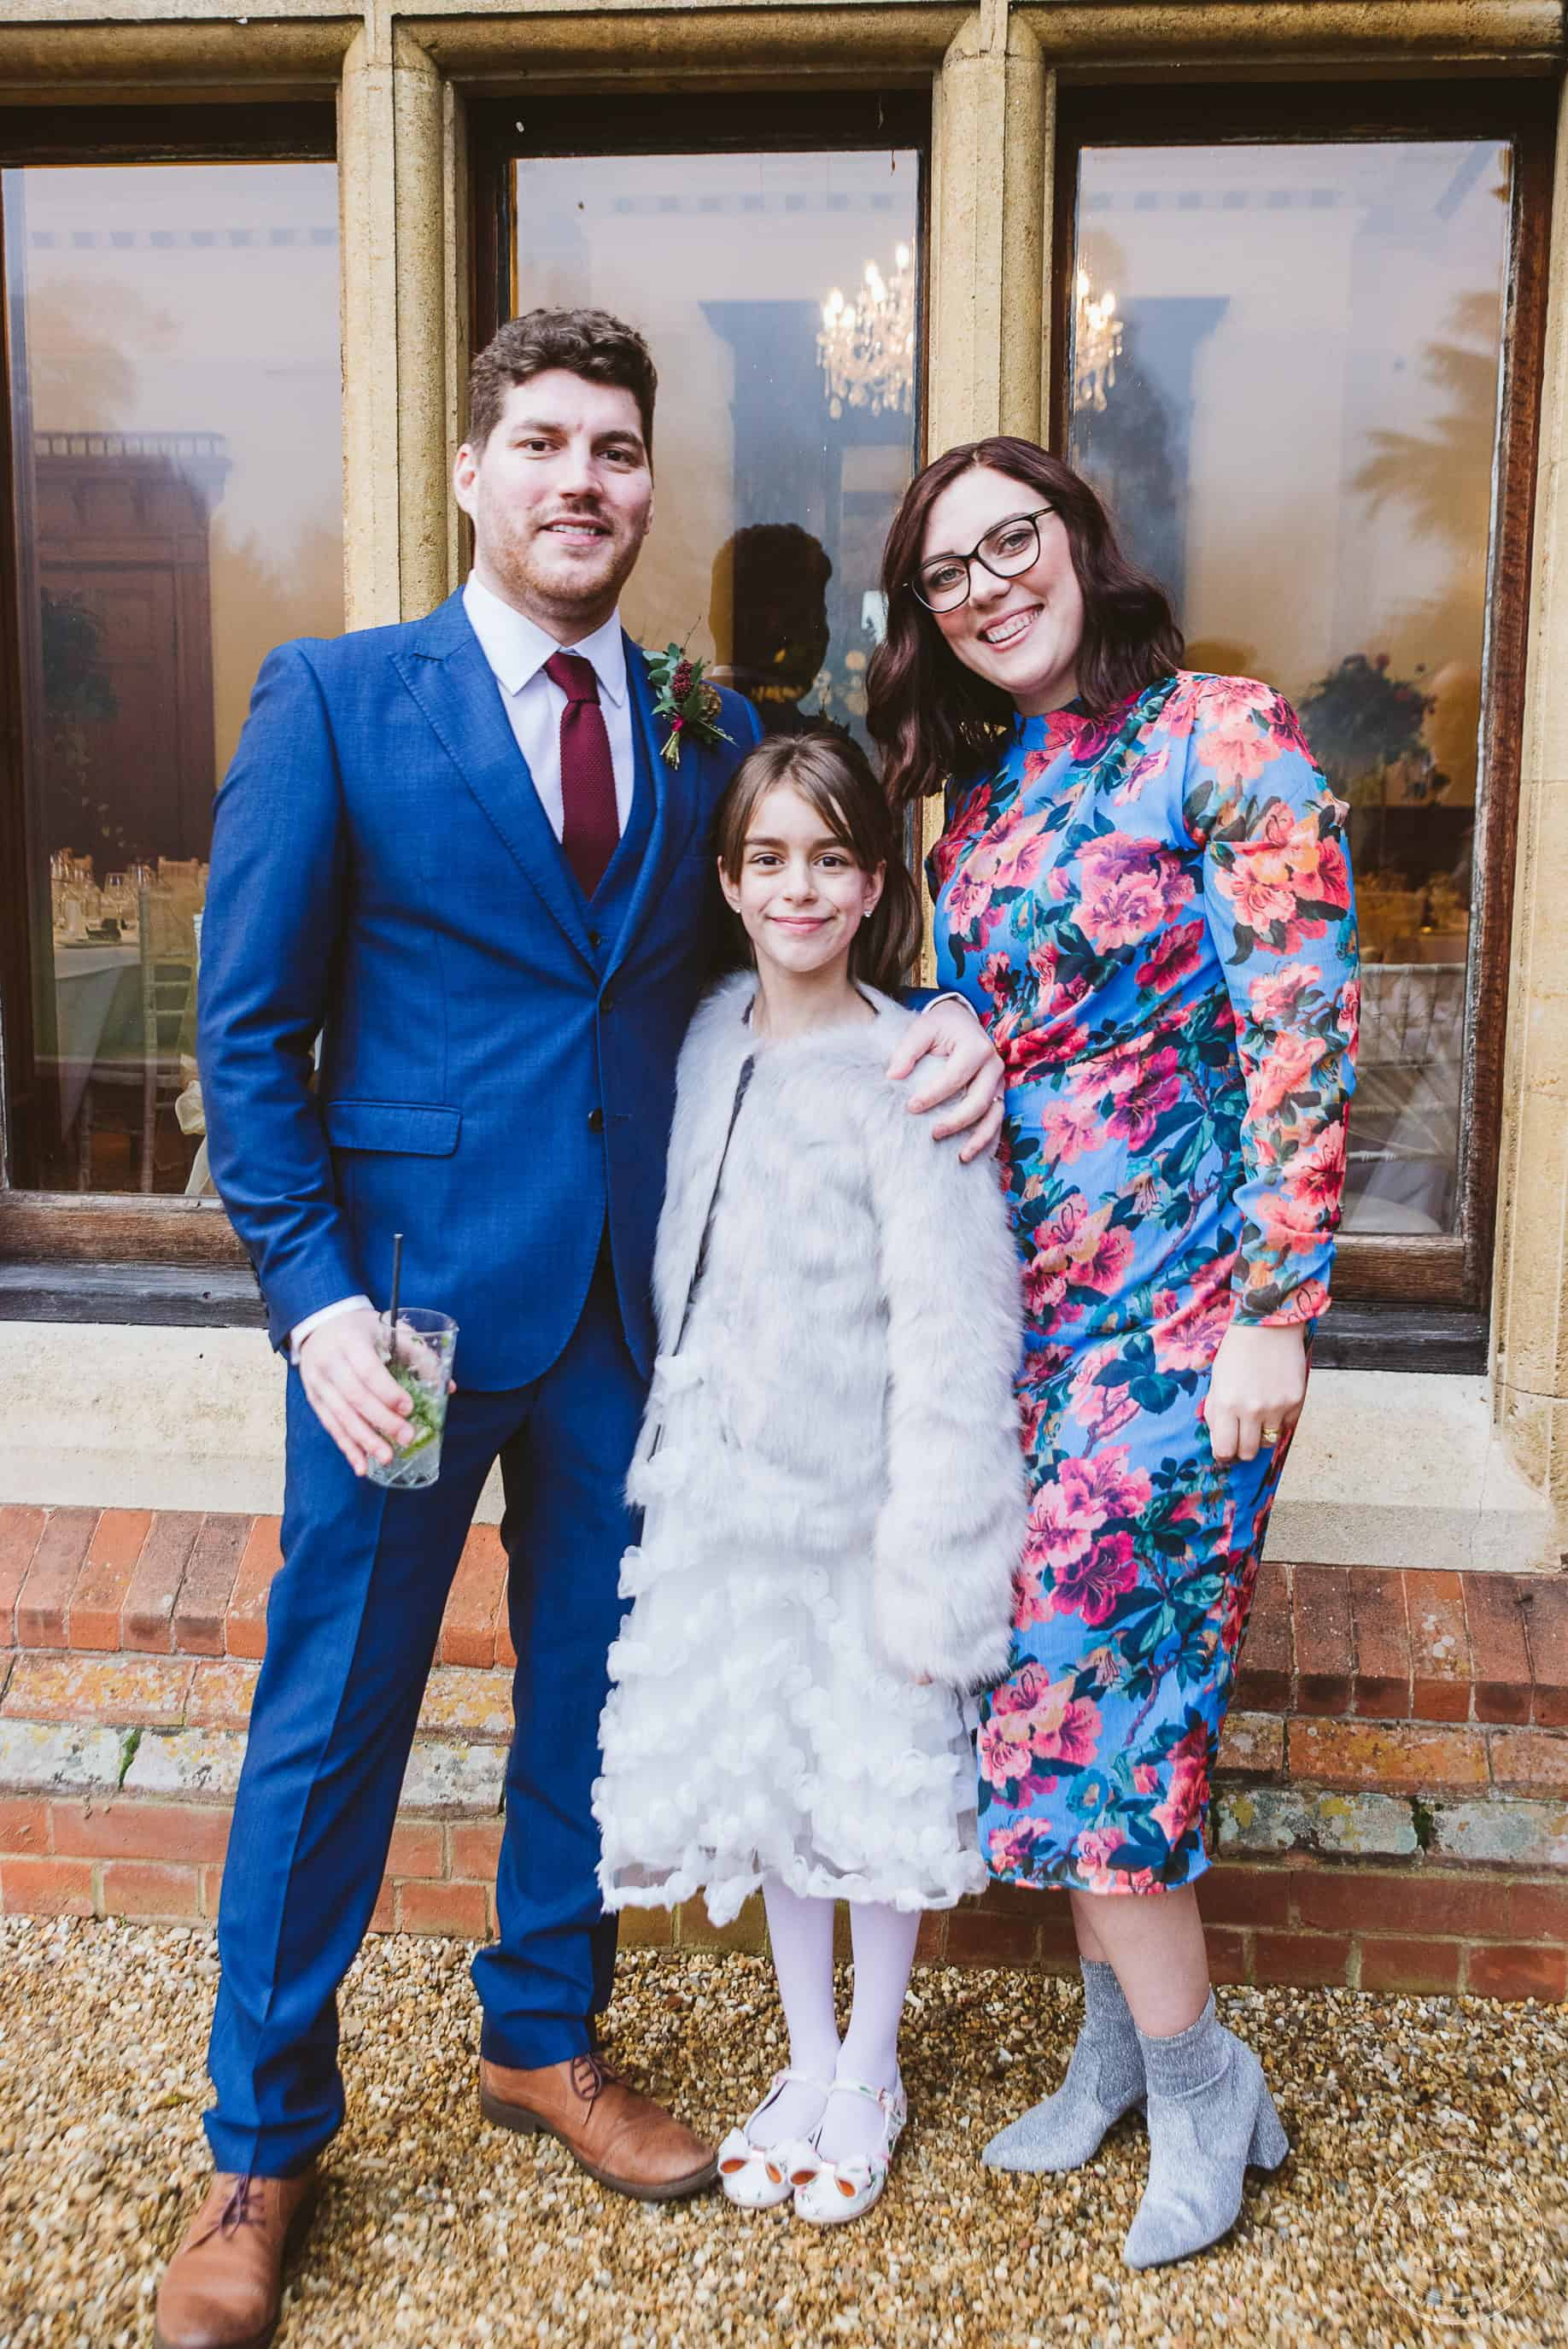 301119 Holmewood Hall Wedding Photographer 130